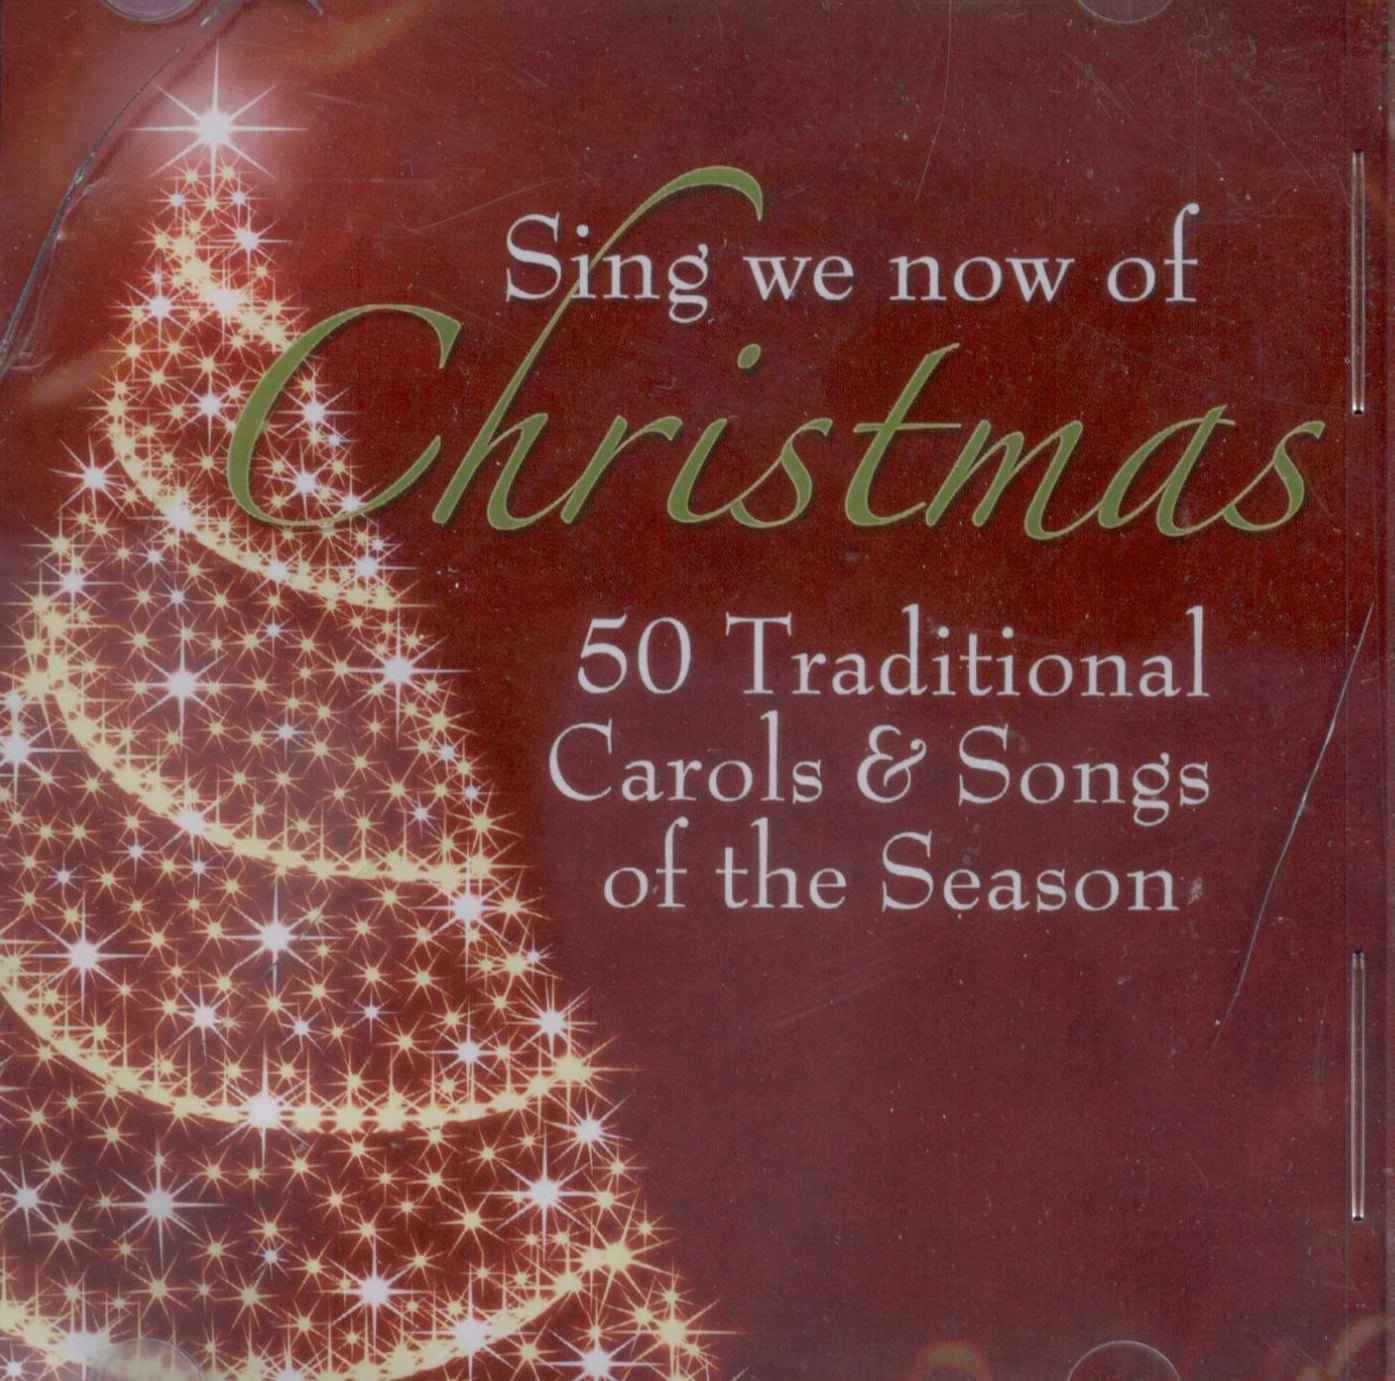 Sing We Now Of Christmas.Sing We Now Of Christmas 50 Traditional Carols Songs Of The Season Cbd Exclusive Compilation